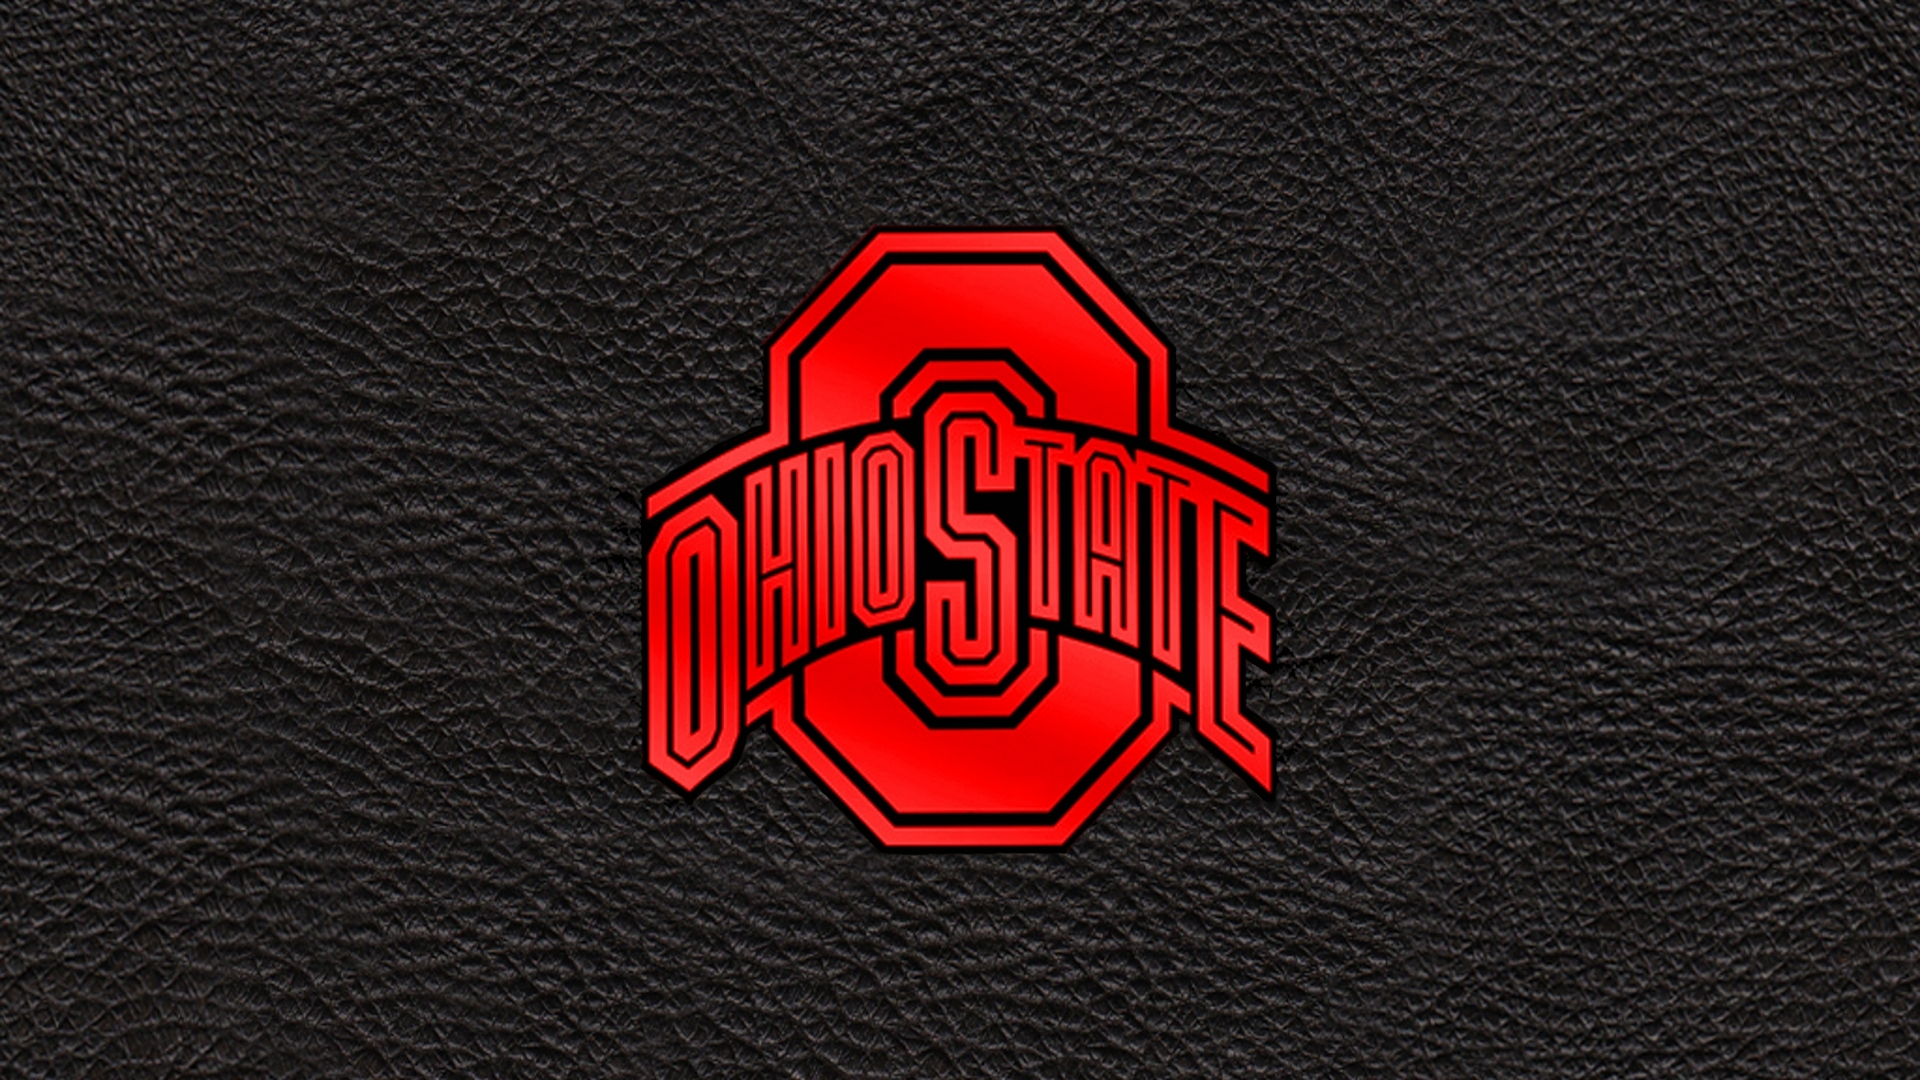 ohio state buckeyes football backgrounds download | ohio state